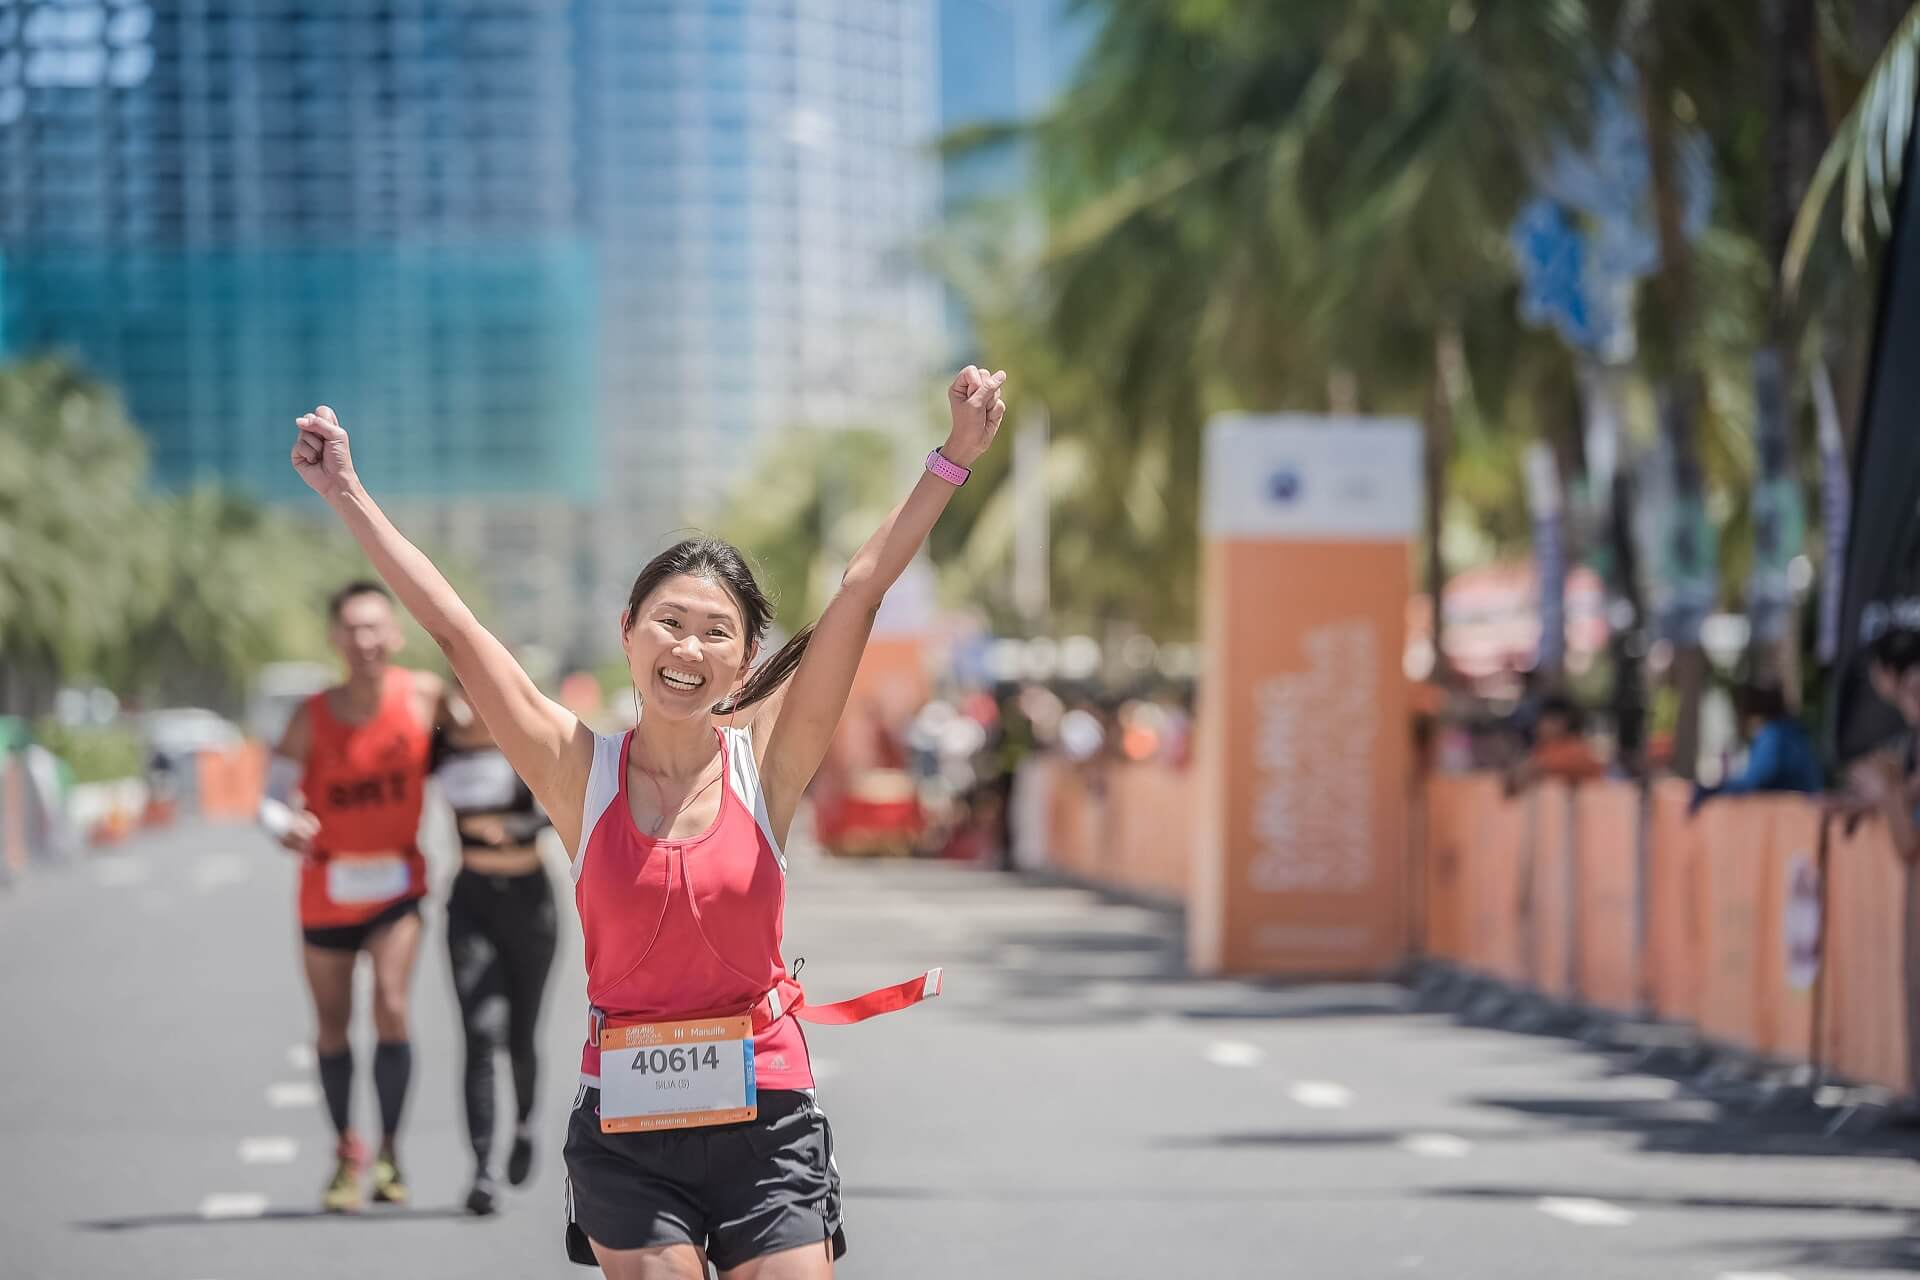 7th Manulife Danang International Marathon Vietnamese Athlete To Win Championship And Two New Records Set 02